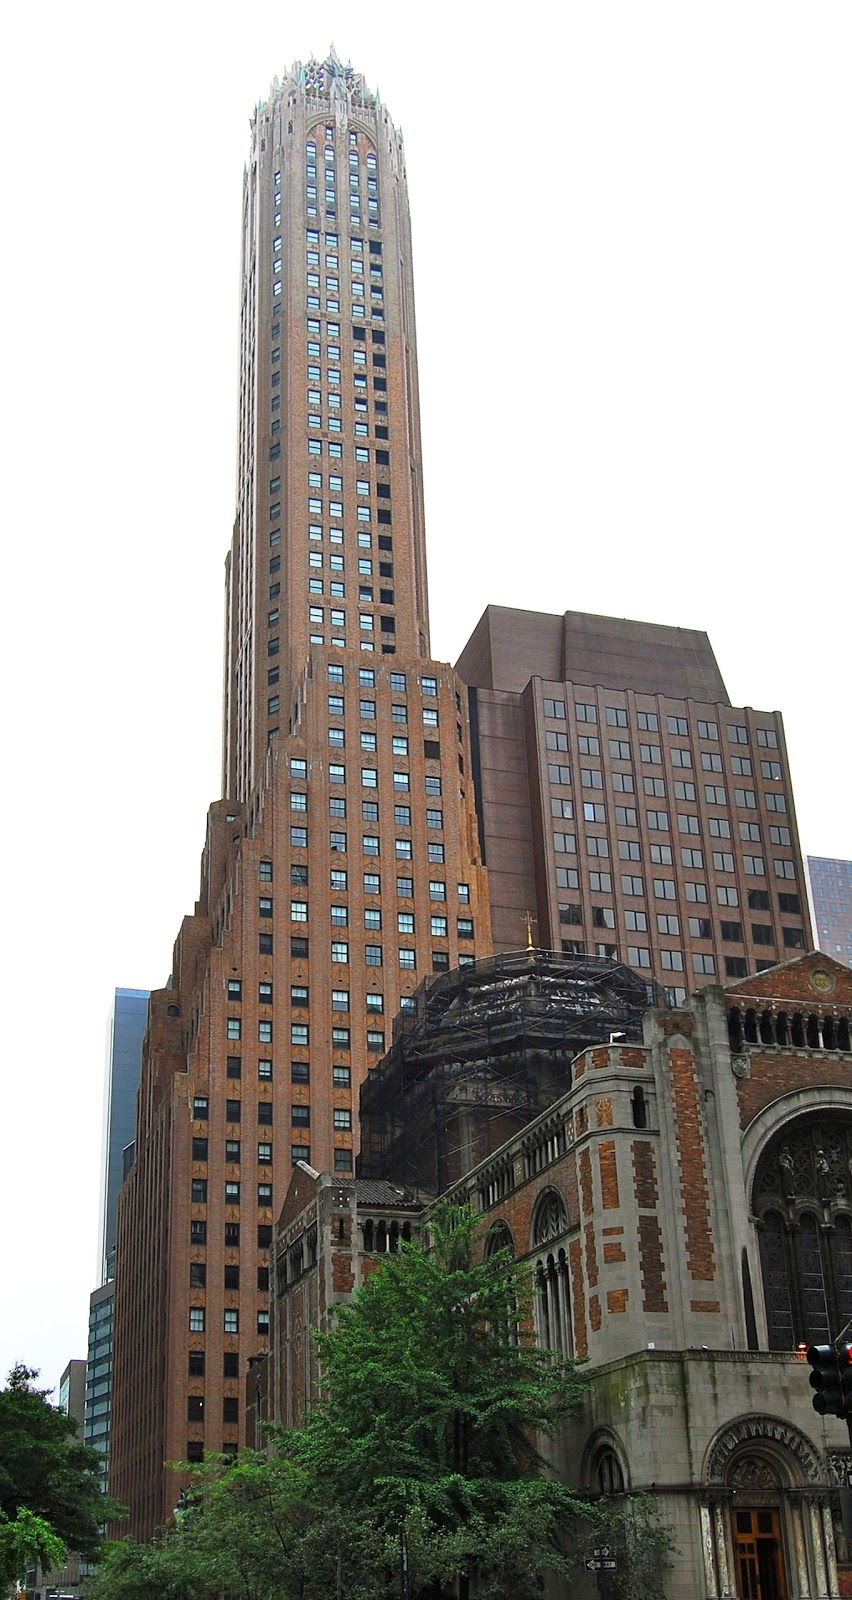 The Gothic Art Deco General Electric Building